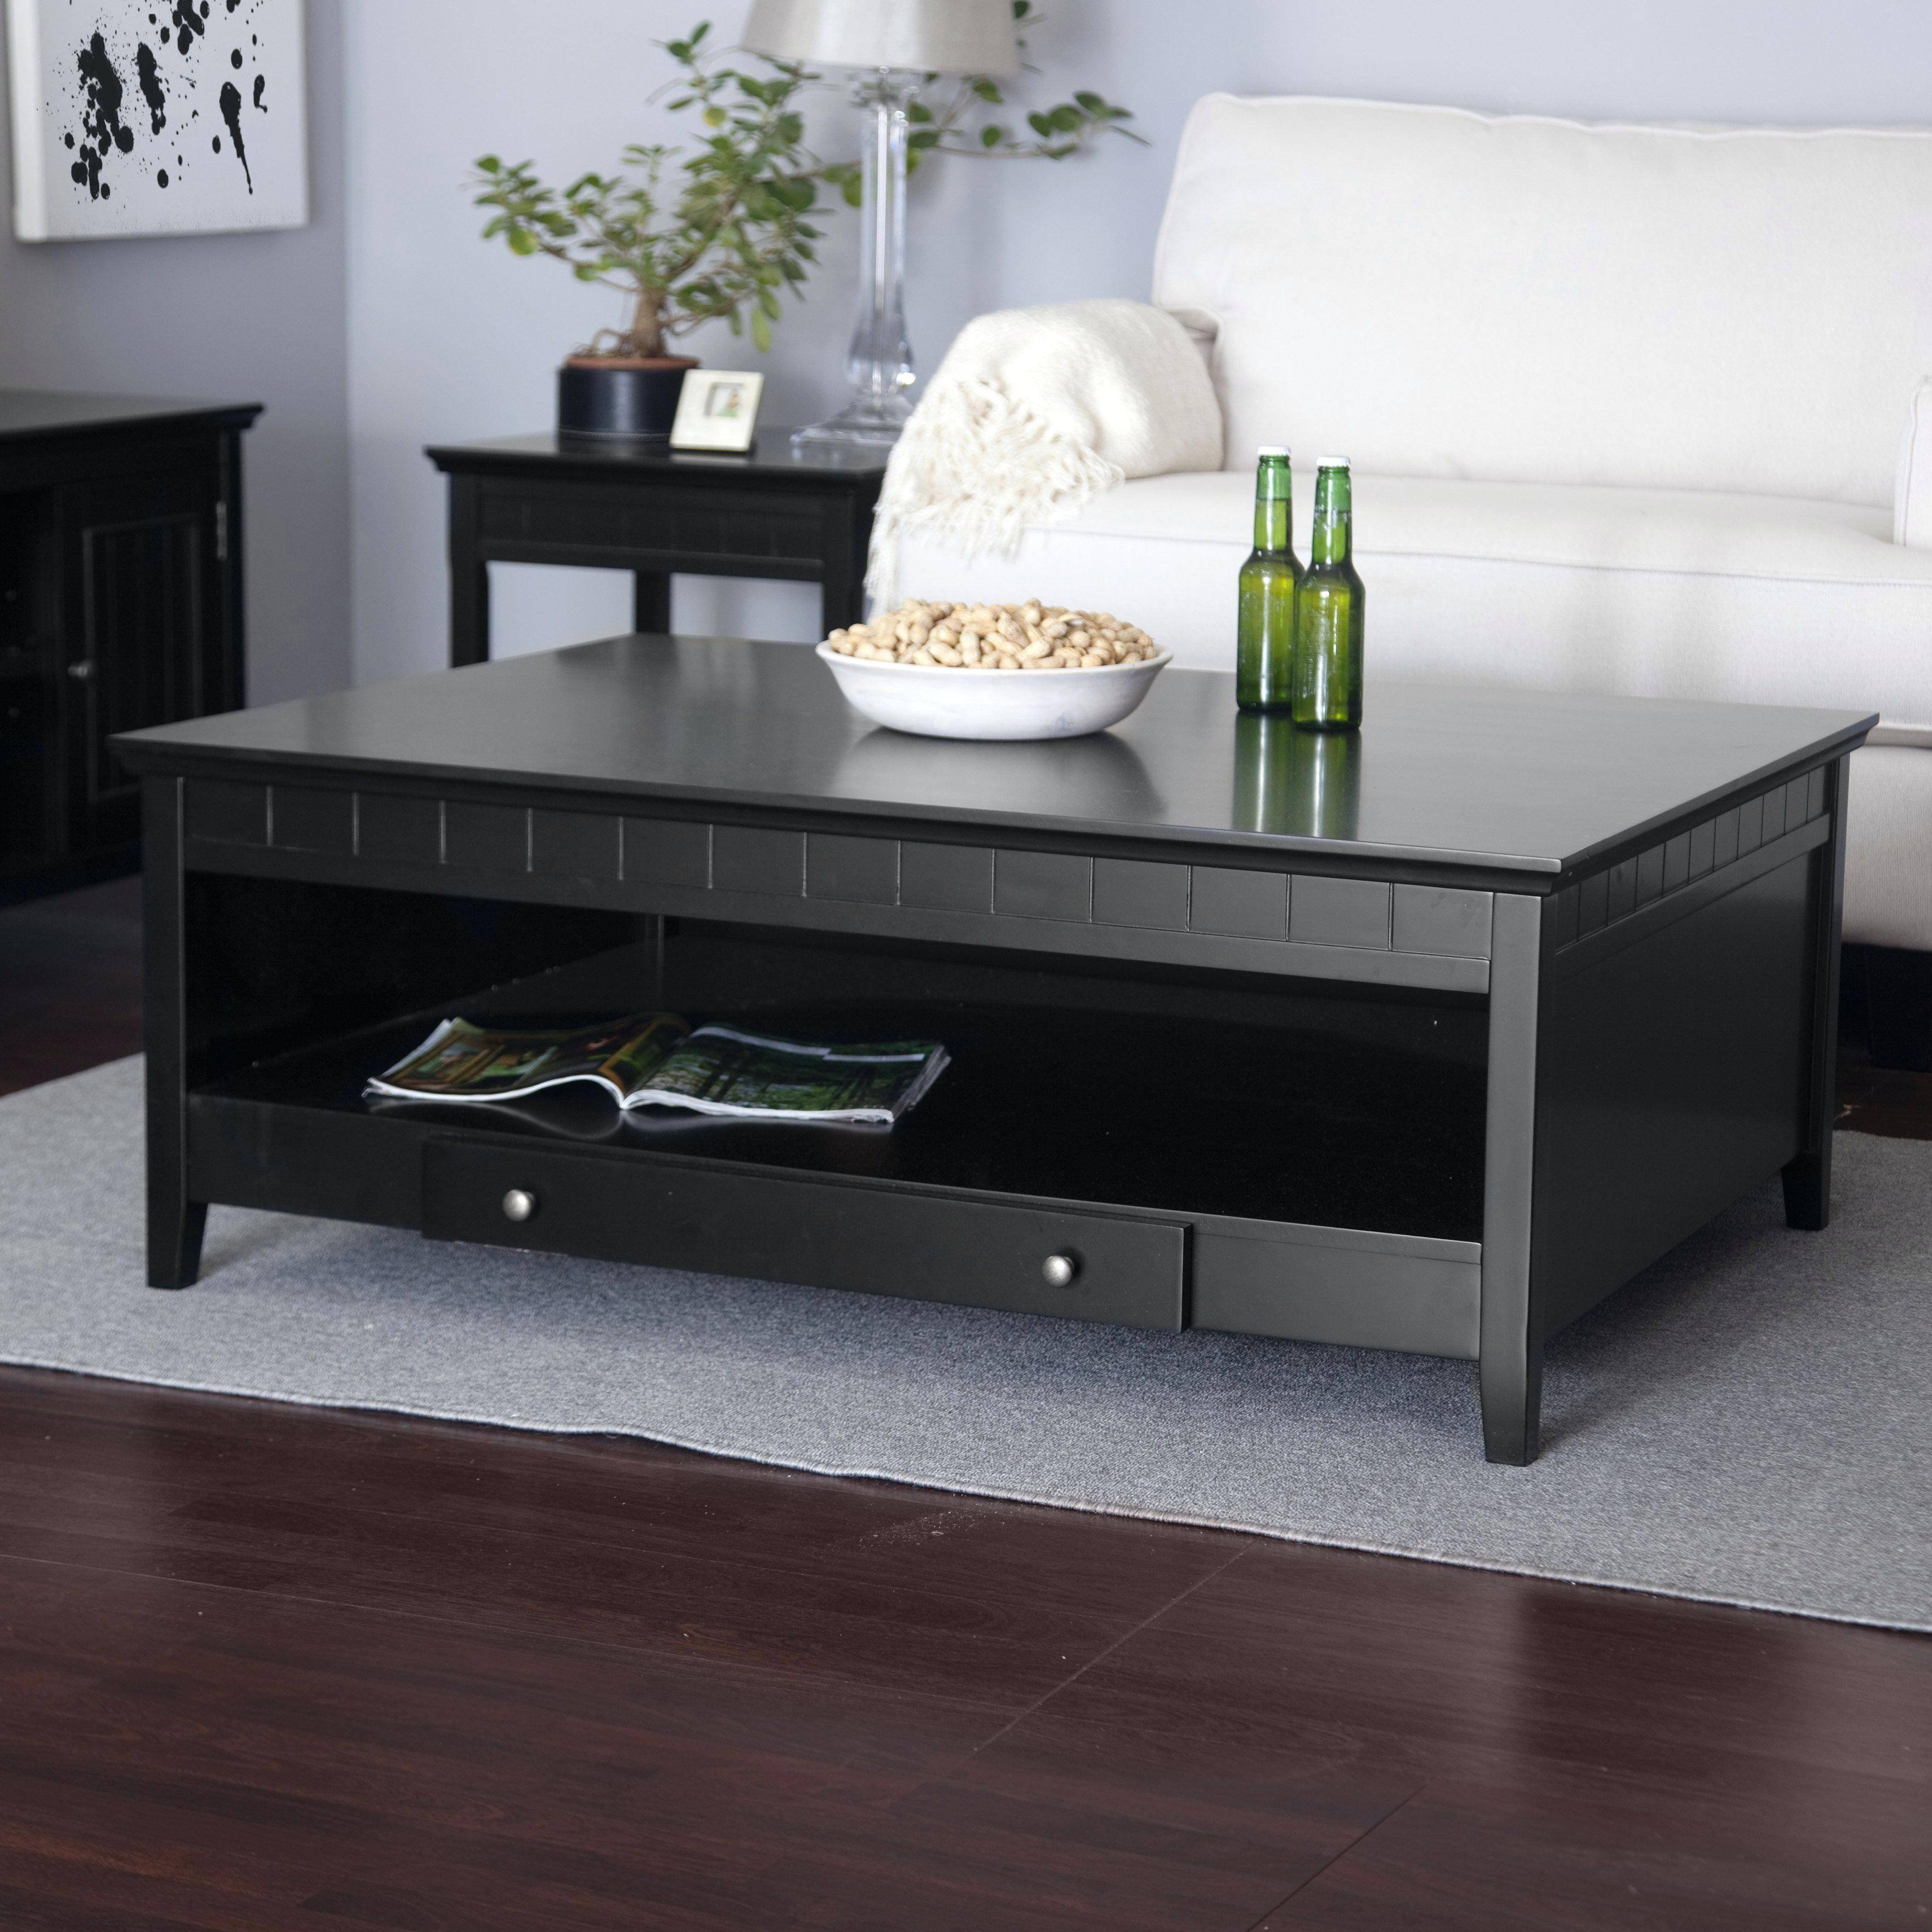 Coffee Table: Square Coffee Table Storage Large Round Coffee inside Square Coffee Tables With Storages (Image 9 of 30)